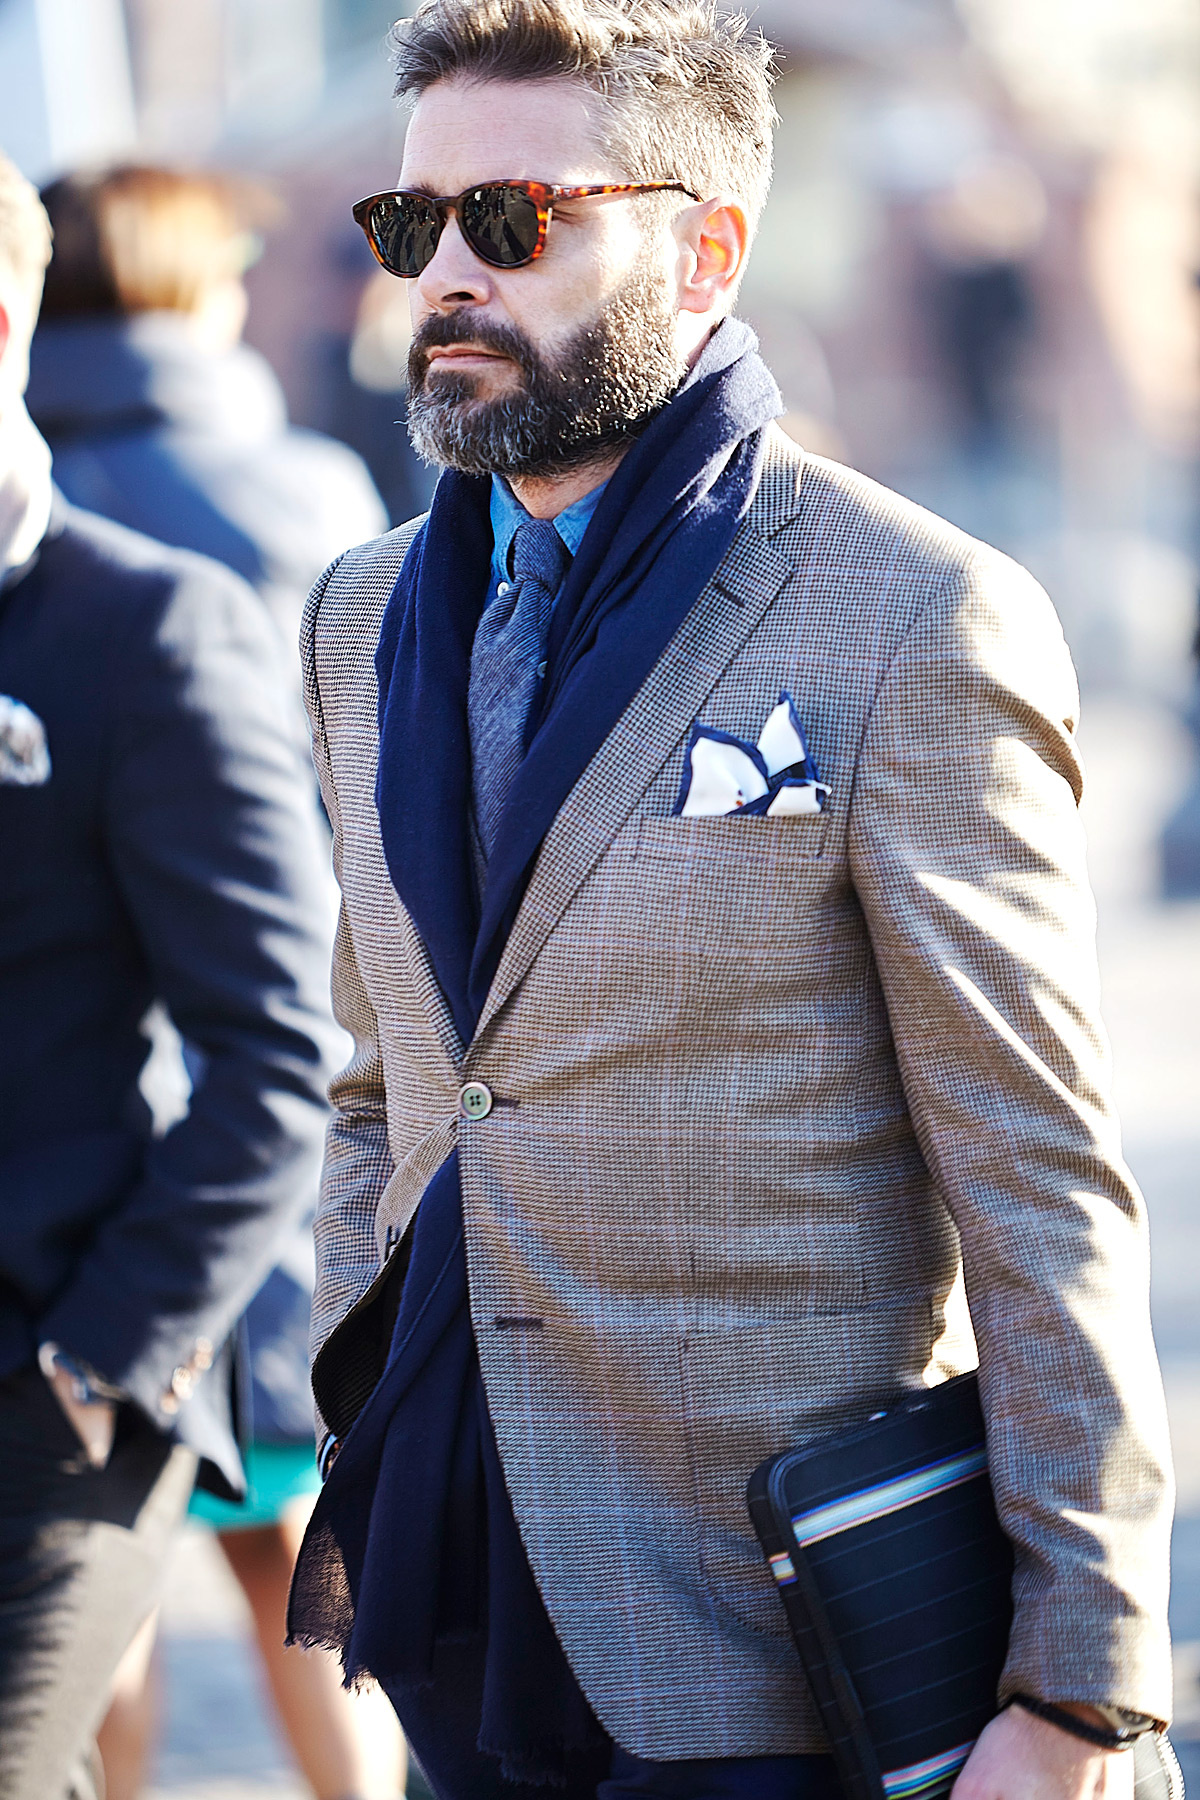 Pitti Uomo 78th Edition Street Style Looks Sun Chasers